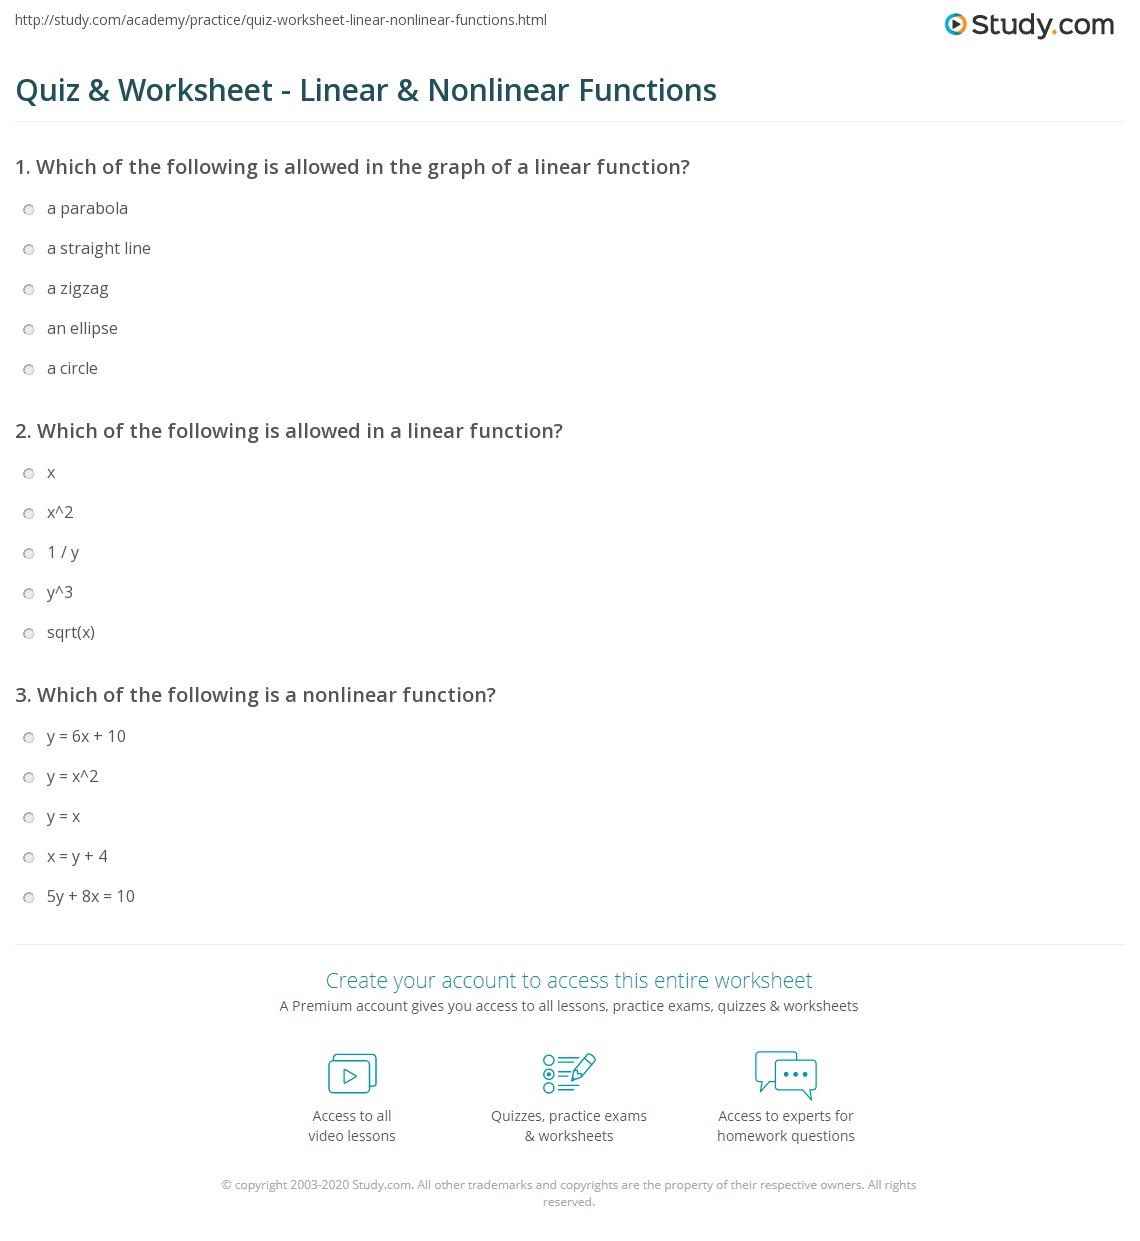 hight resolution of Quiz \u0026 Worksheet - Linear \u0026 Nonlinear Functions   Study.com